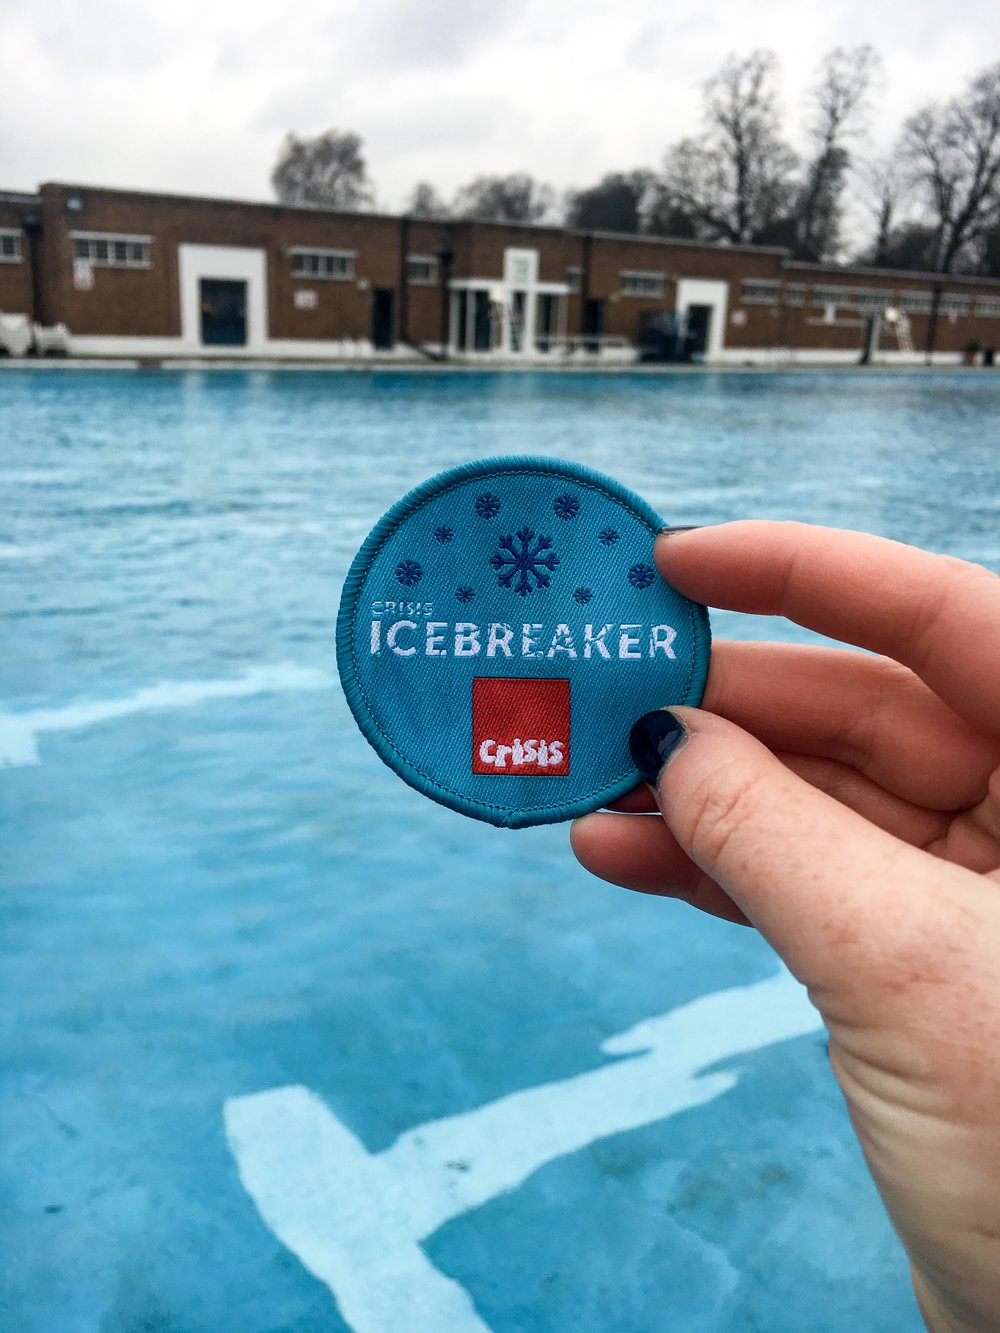 Crisis Icebreaker Cold Water Swimming Challenge - A Pretty Place to Play, London Running and Fitness Blog